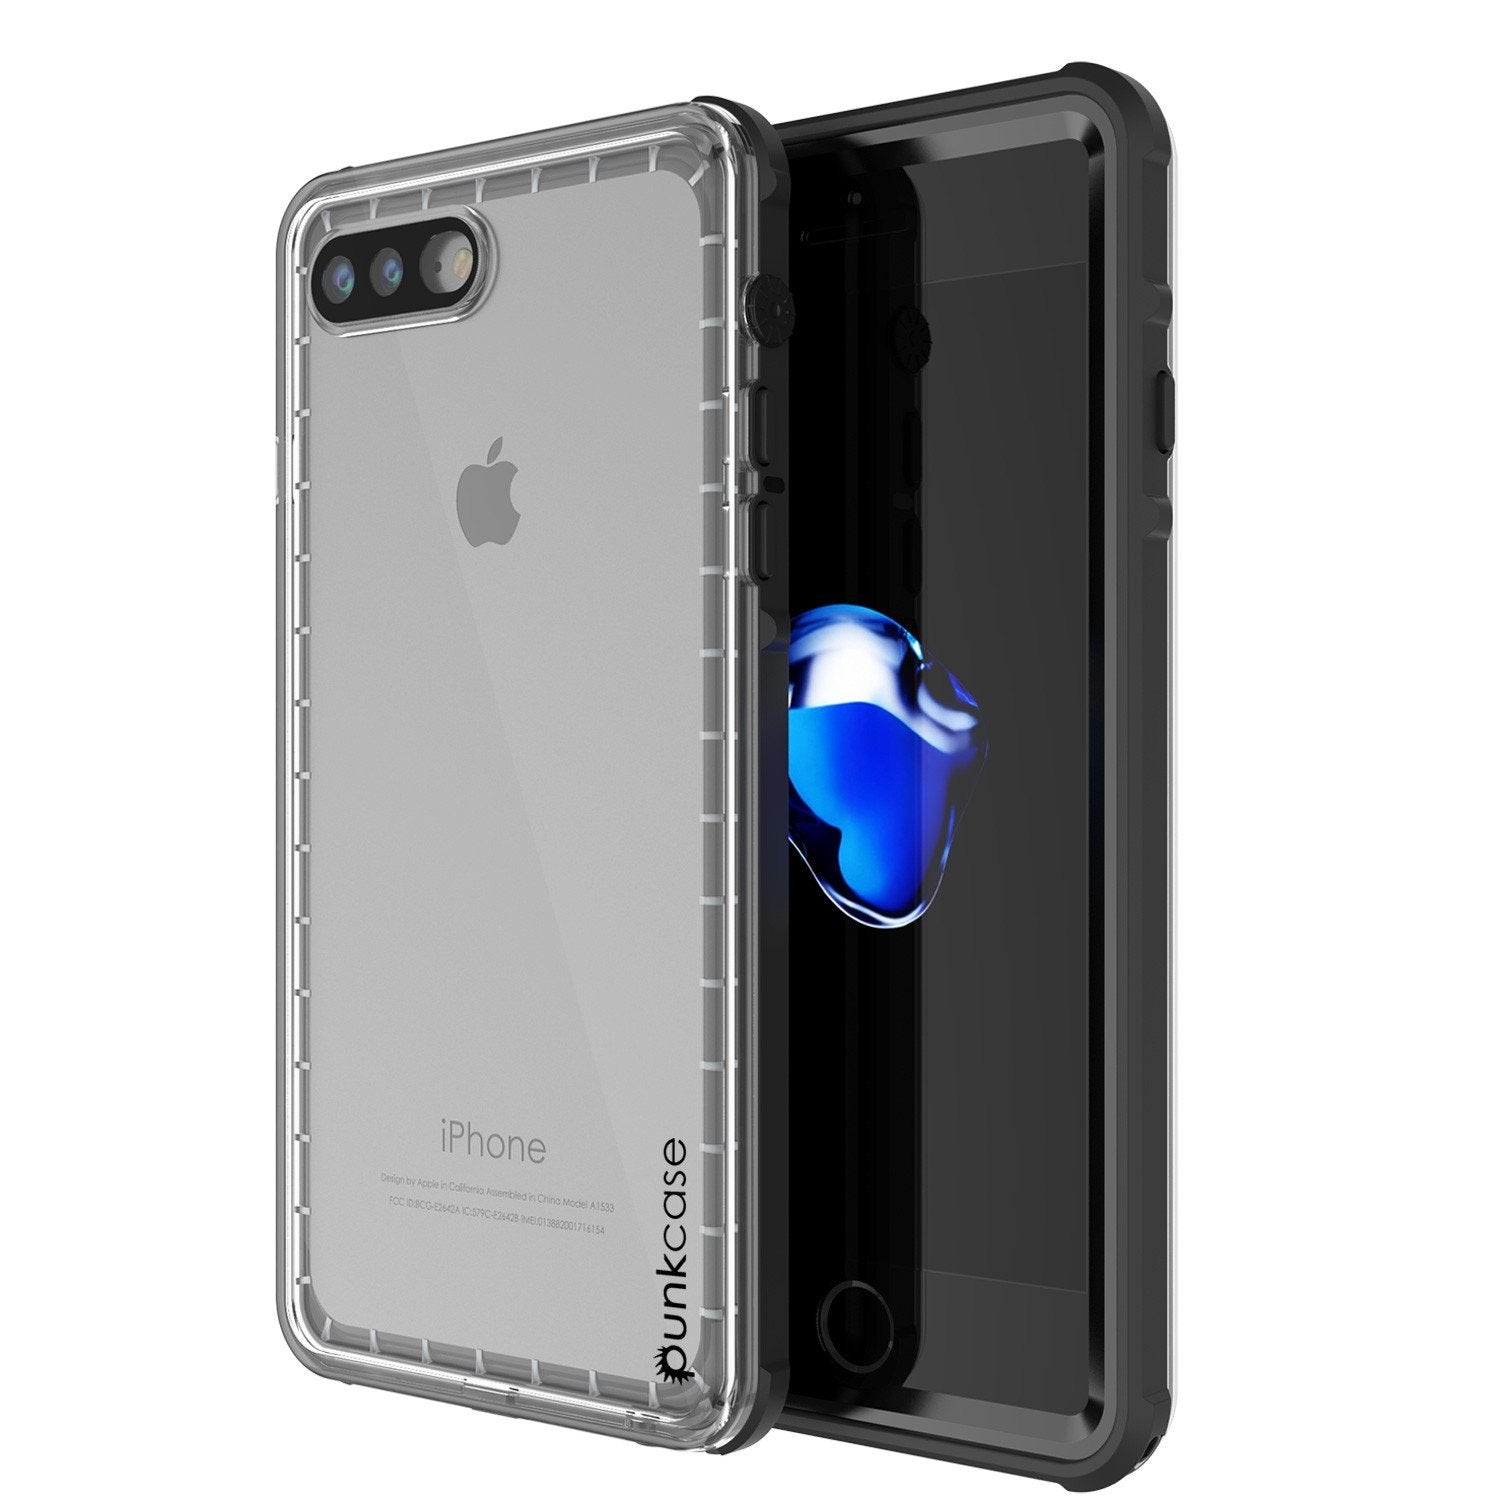 on sale 88d99 e71b5 iPhone 8+ Plus Waterproof Case, PUNKcase CRYSTAL Black W/ Attached Screen  Protector | Warranty